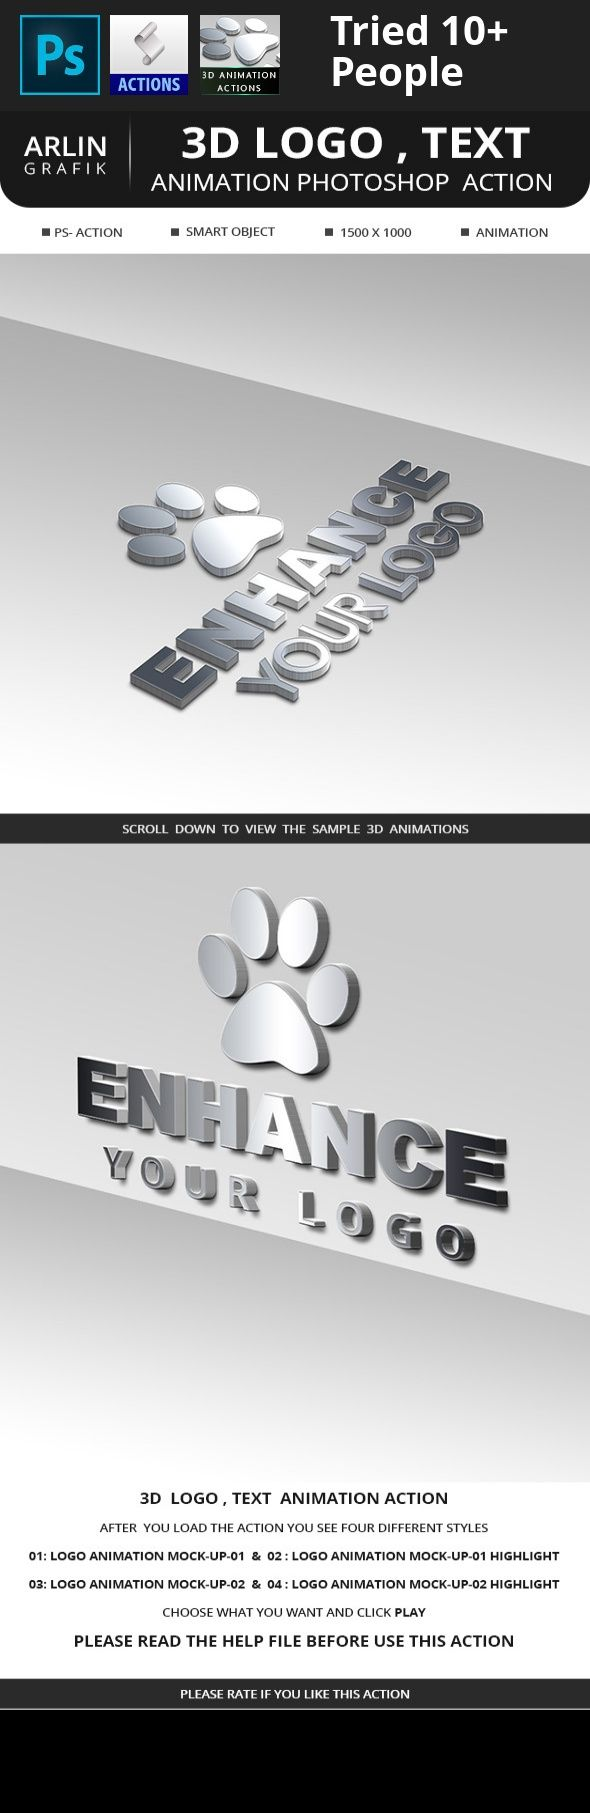 3d, 3d mockup, action, animation, atn, editing, effect, excellent, gif, highlight, logo, logo mockup, metal, mock up, mock-up, mockup, model, movie title, photoshop action, realistic, realistic 3D, rise, steel, stylish, text effect, title, video   3D Logo , Text Animation Photoshop Action  Create high quality  3d Mock-up with Animation .All layers are perfectly named and Group .This action will save your time   Please like my Facebook page for feature  updates    The action is working on…